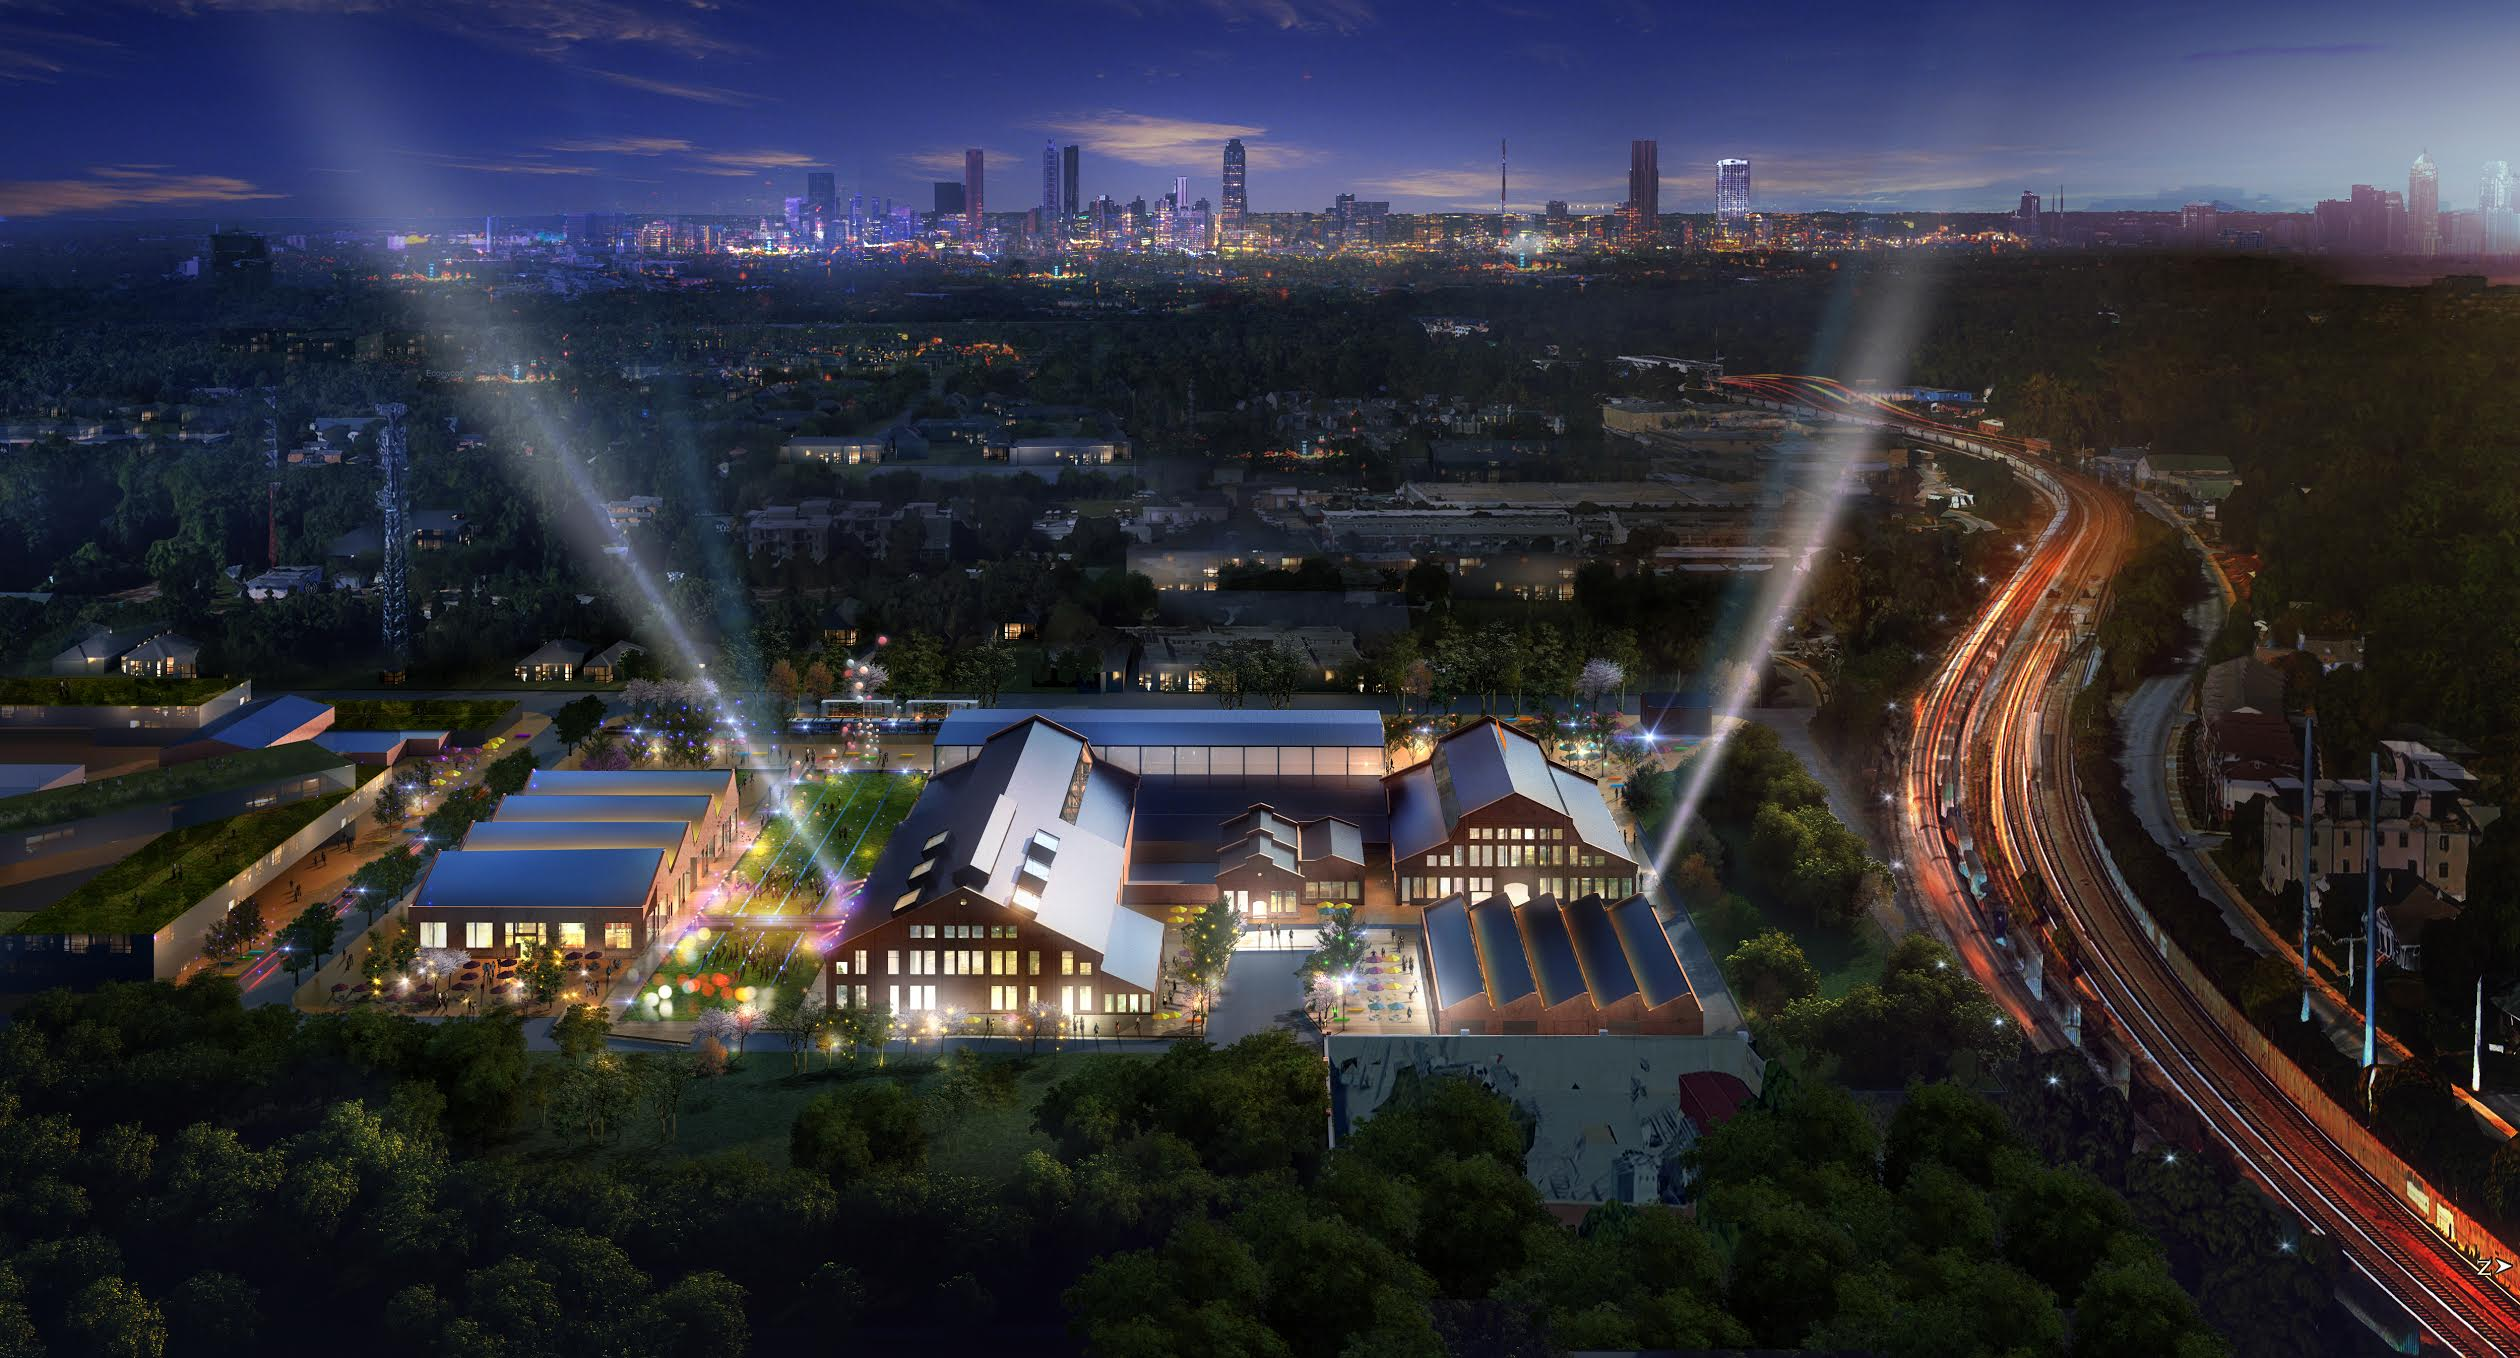 Rendering of entertainment district lit up at night with Atlanta in the background.